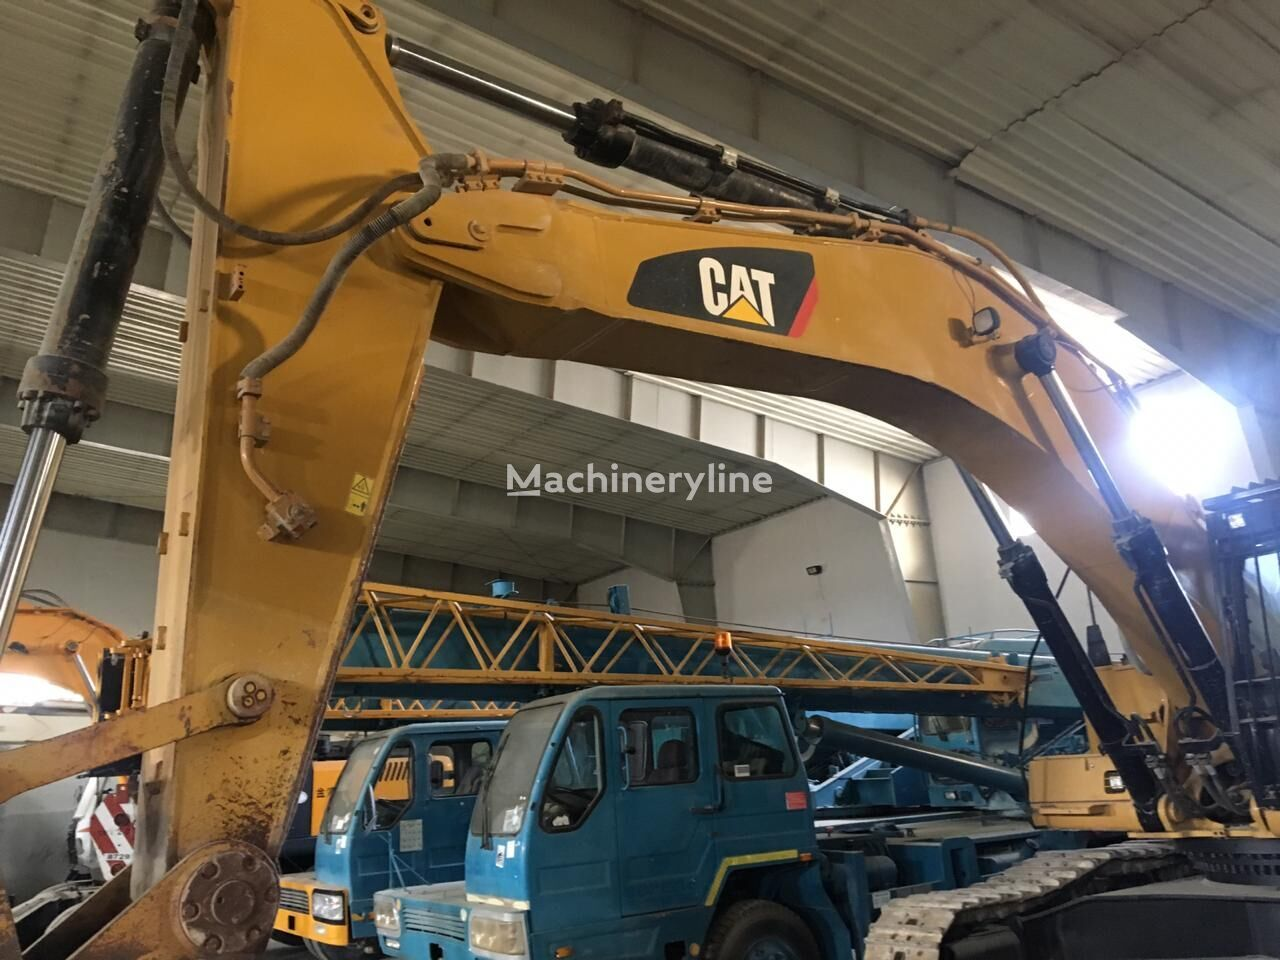 CATERPILLAR 349DL tracked excavator